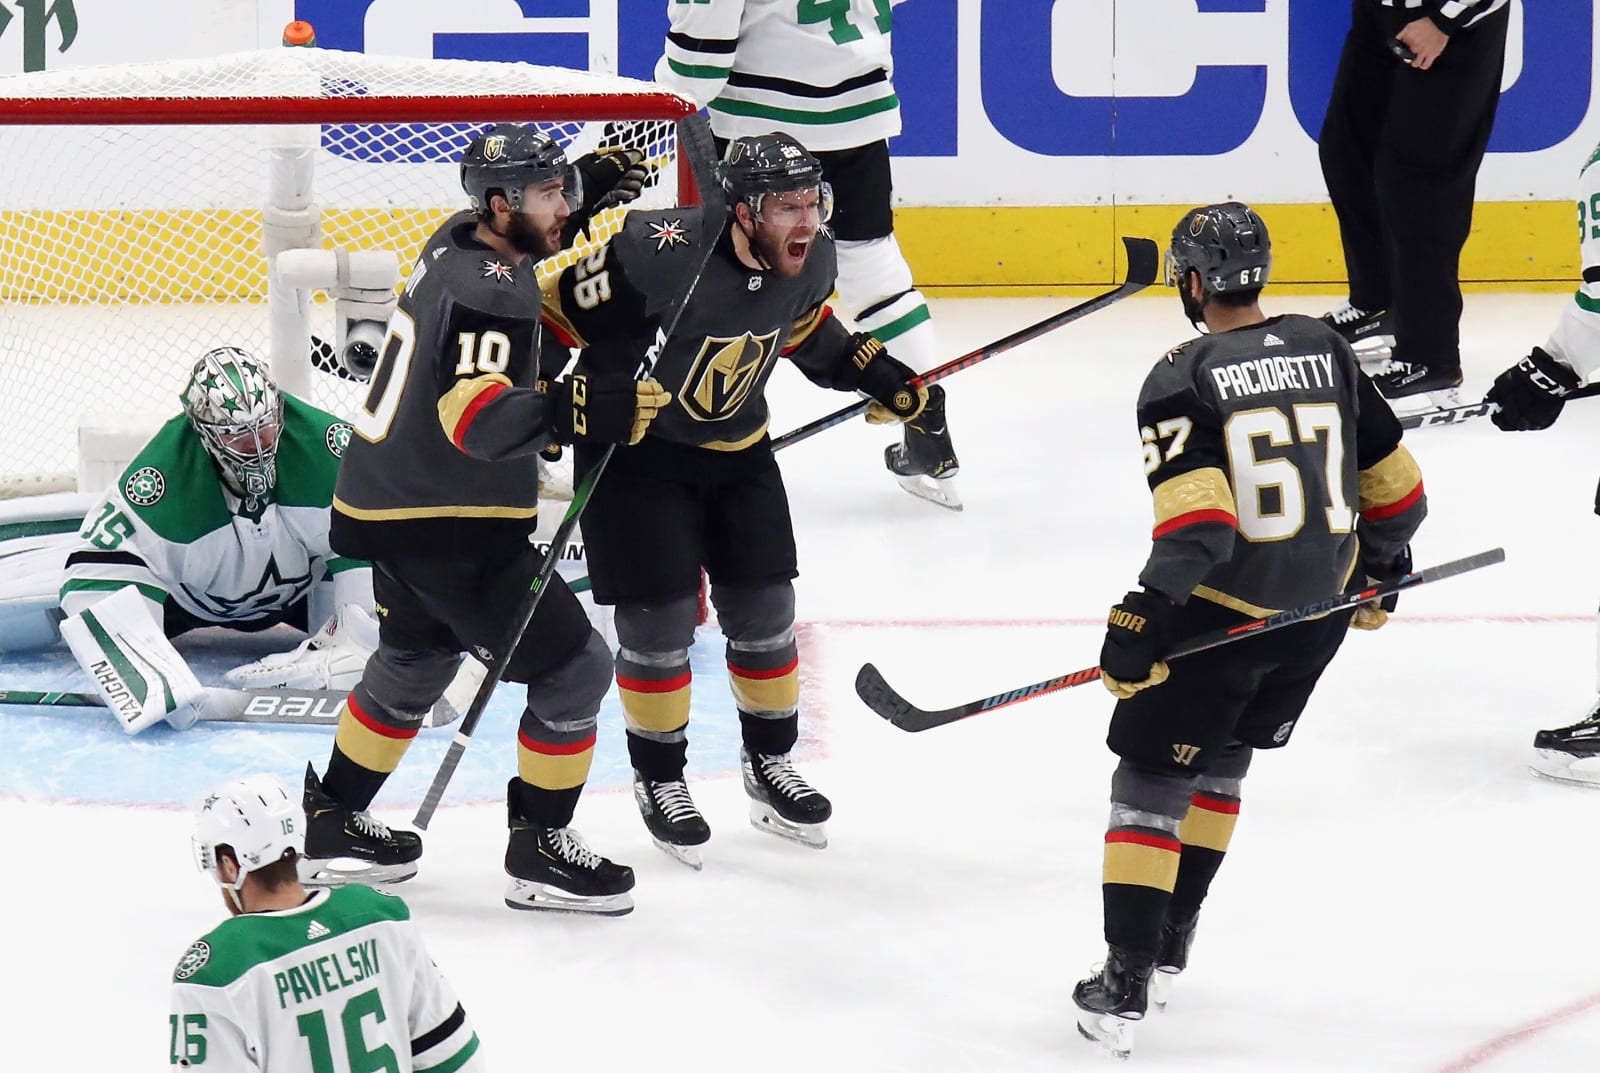 Paul Stastny #26 and the Vegas Golden Knights celebrate his goal against the Dallas Stars in Game Two